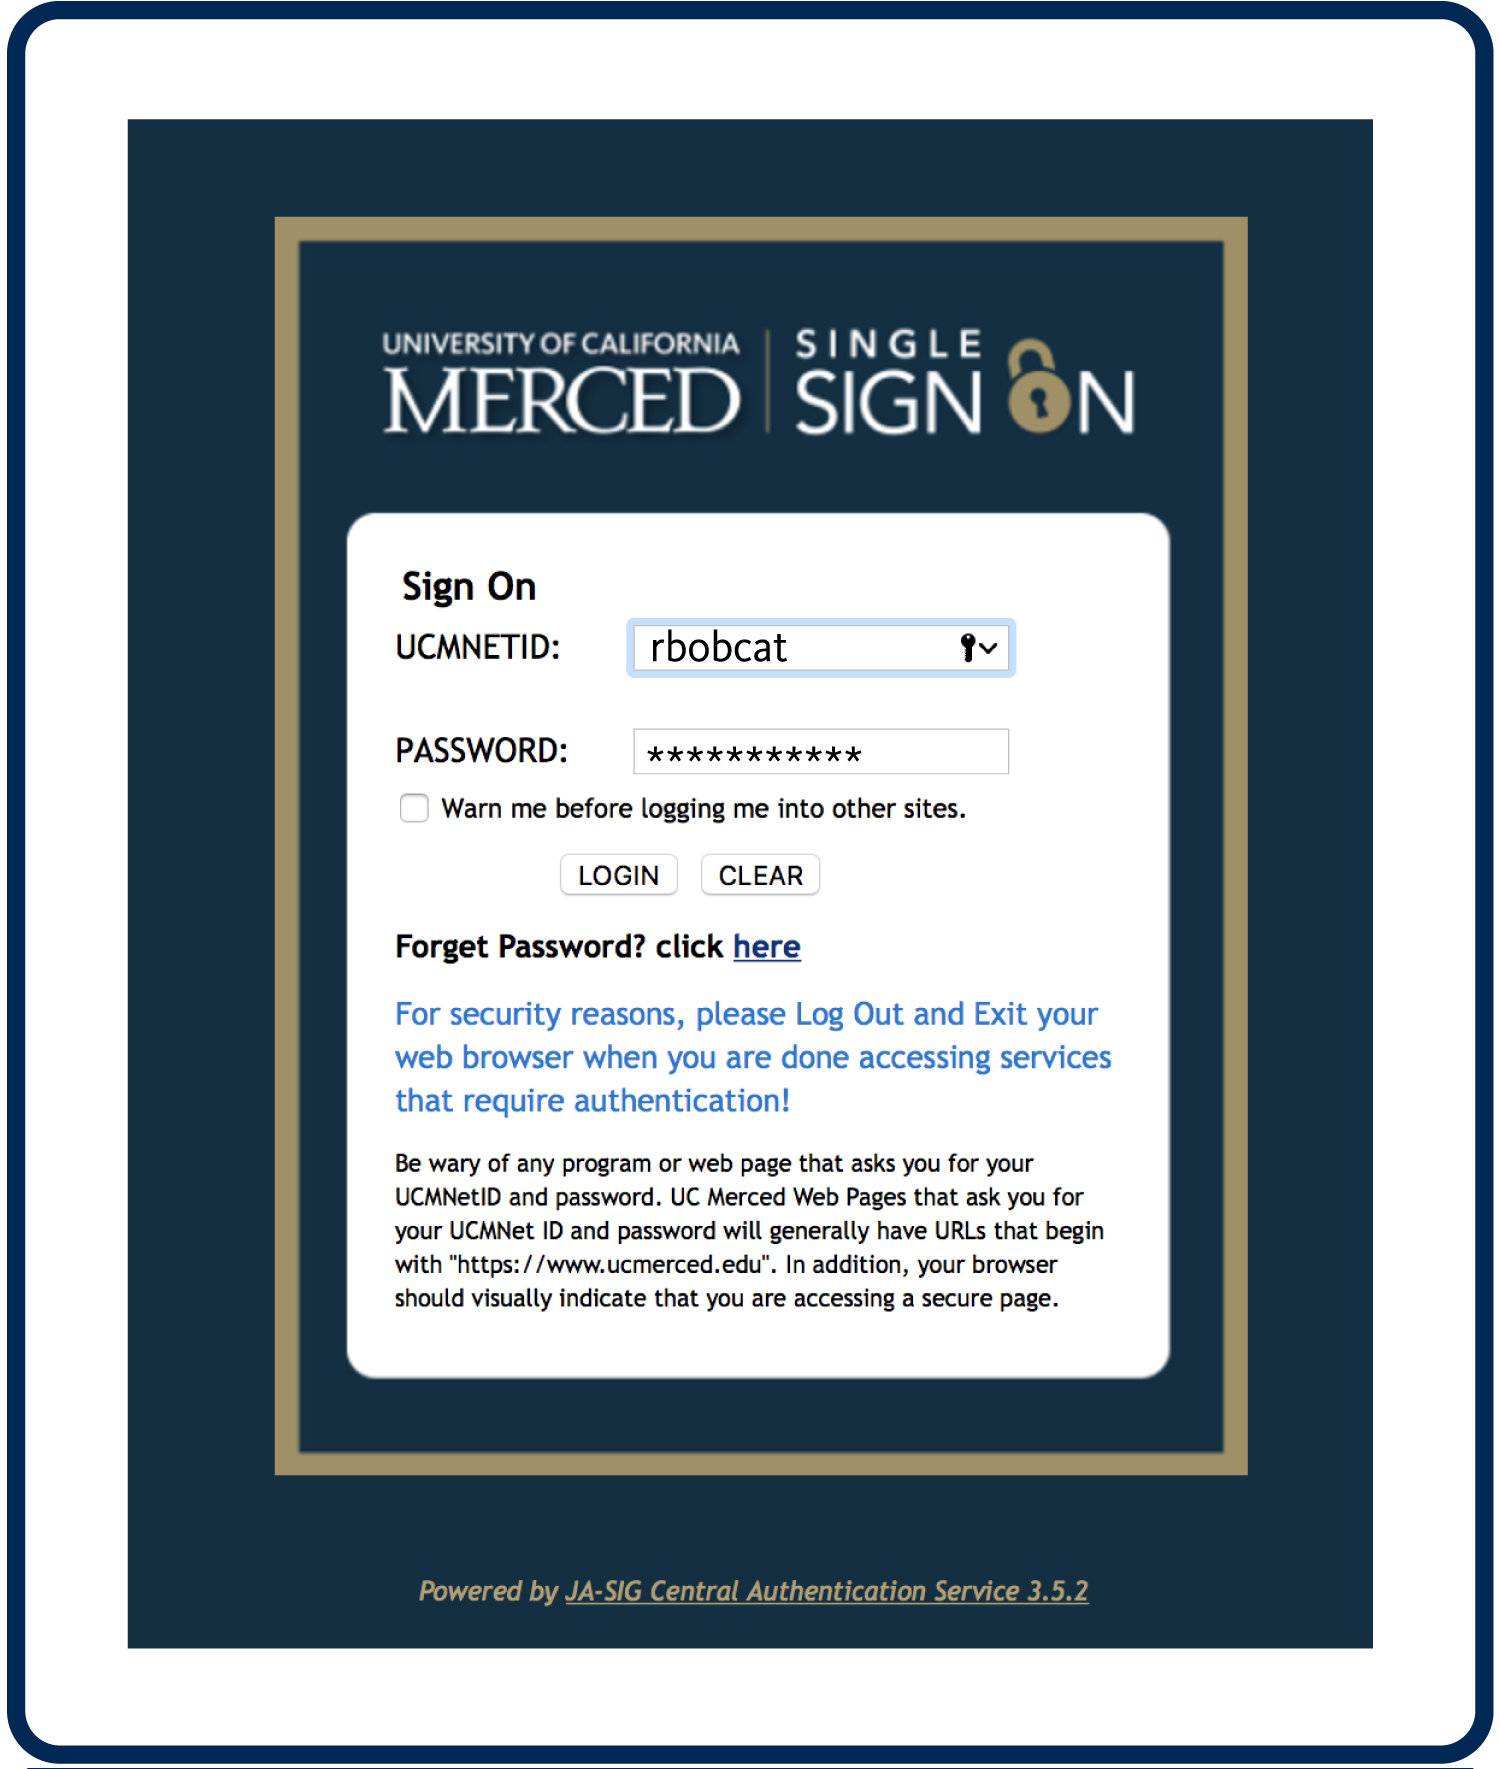 Screenshot of UC Merced Single Sign On with rbobcat's login credentials